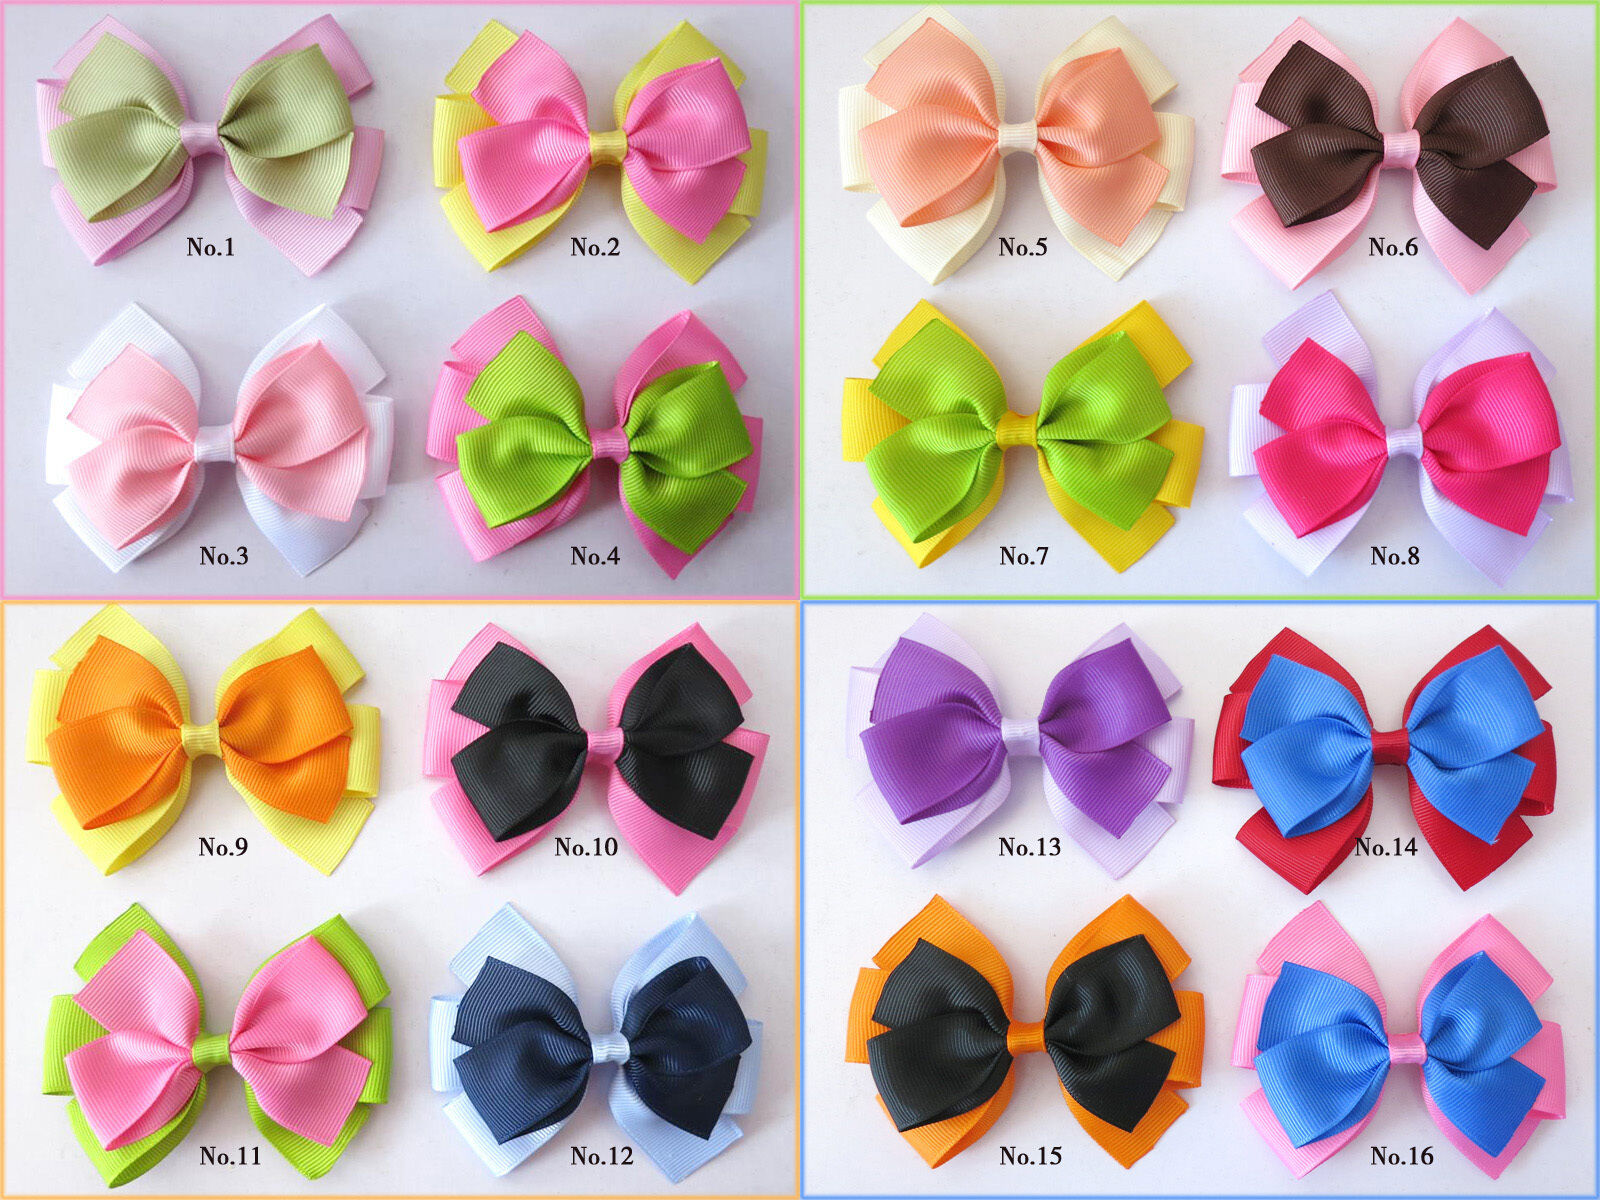 """200 BLESSING Good Girl Custom Boutique 2.5/"""" Bowknot Hair Bow Clip #420 Wholesale"""